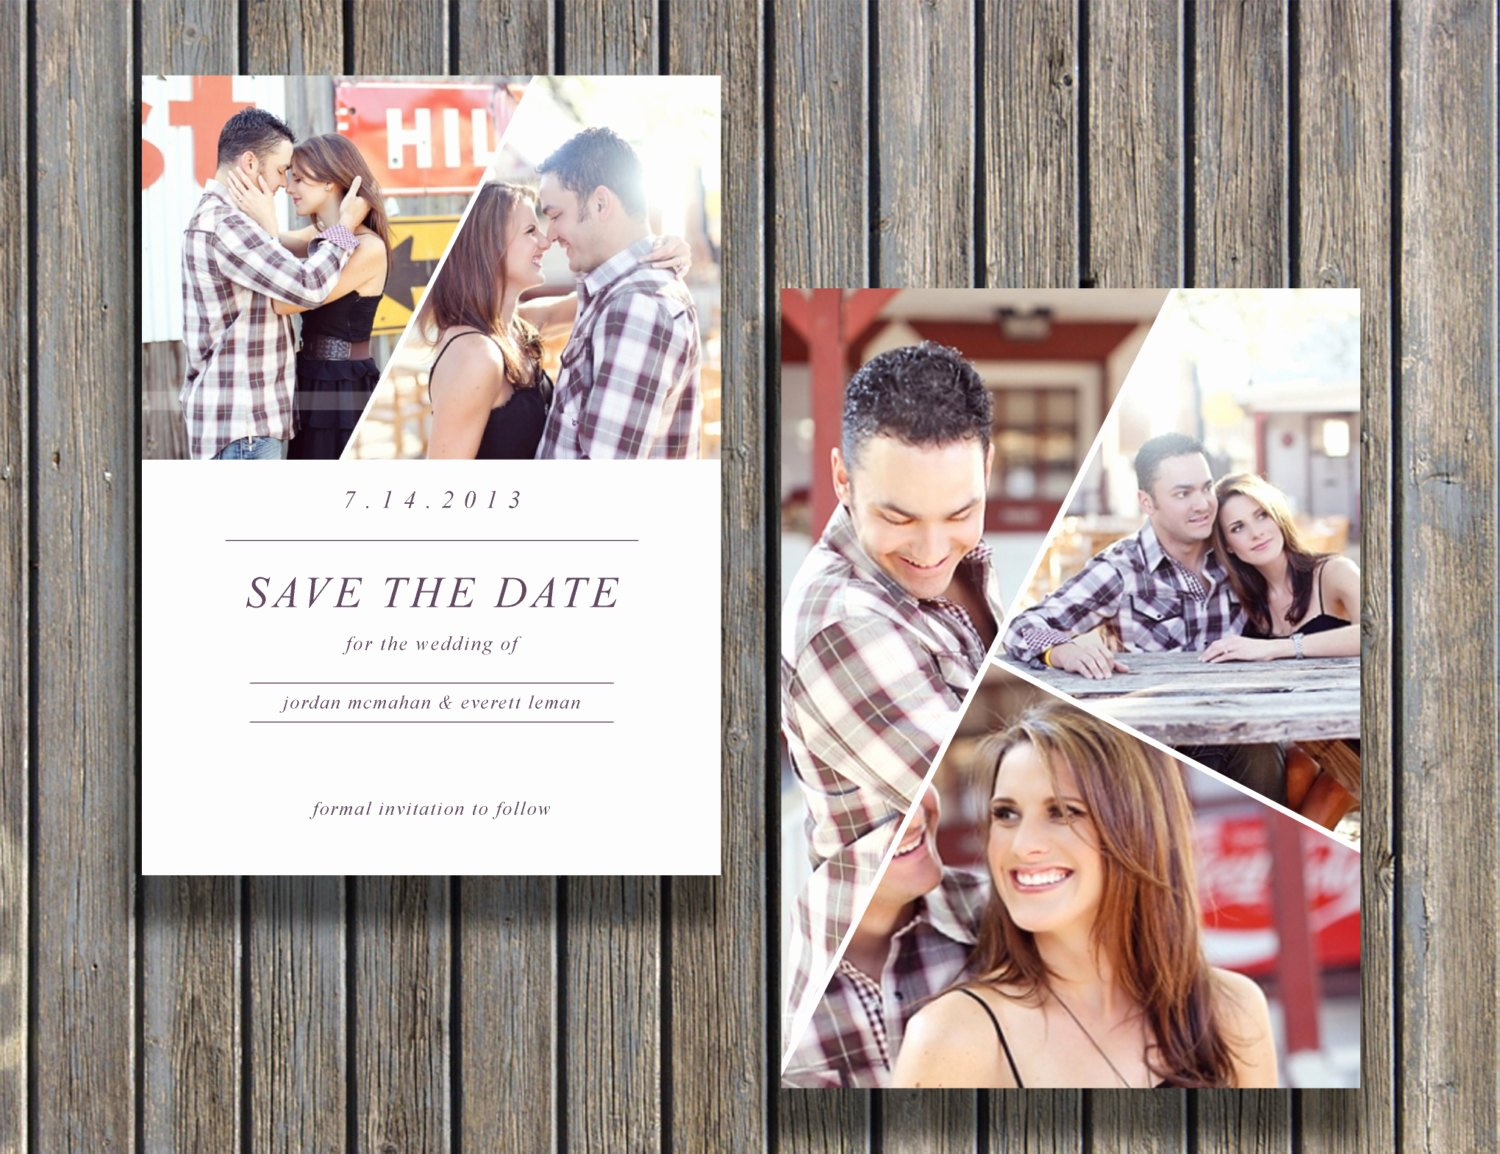 Save the Date Photoshop Templates Best Of Save the Date Template for Graphers and Shop Users